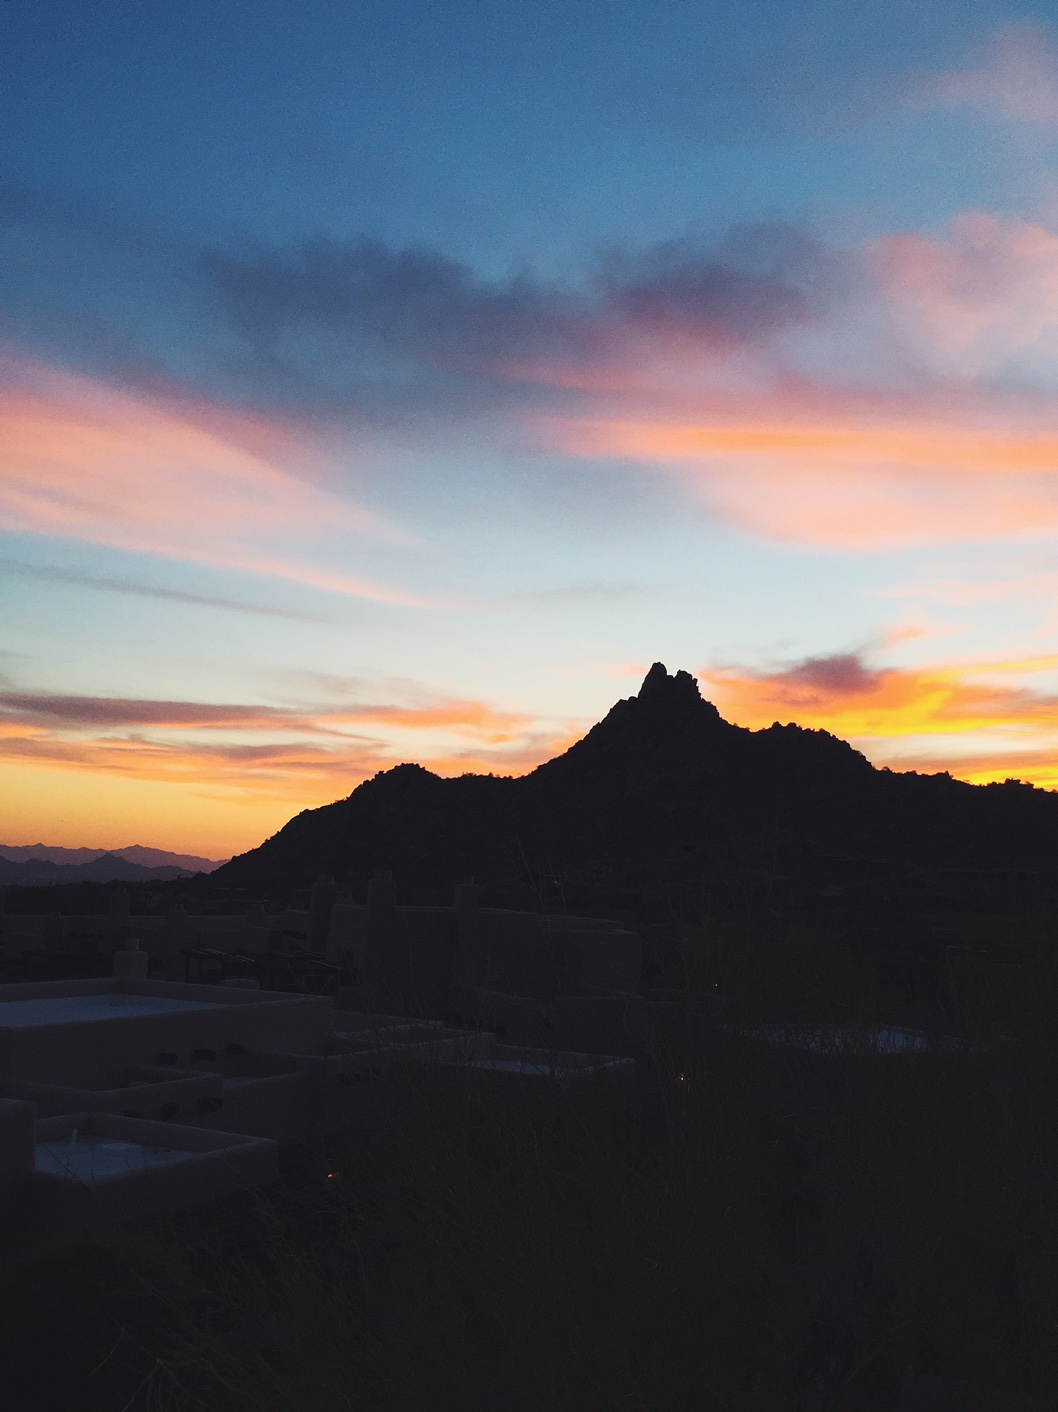 sunset over a mountain in scottsdale